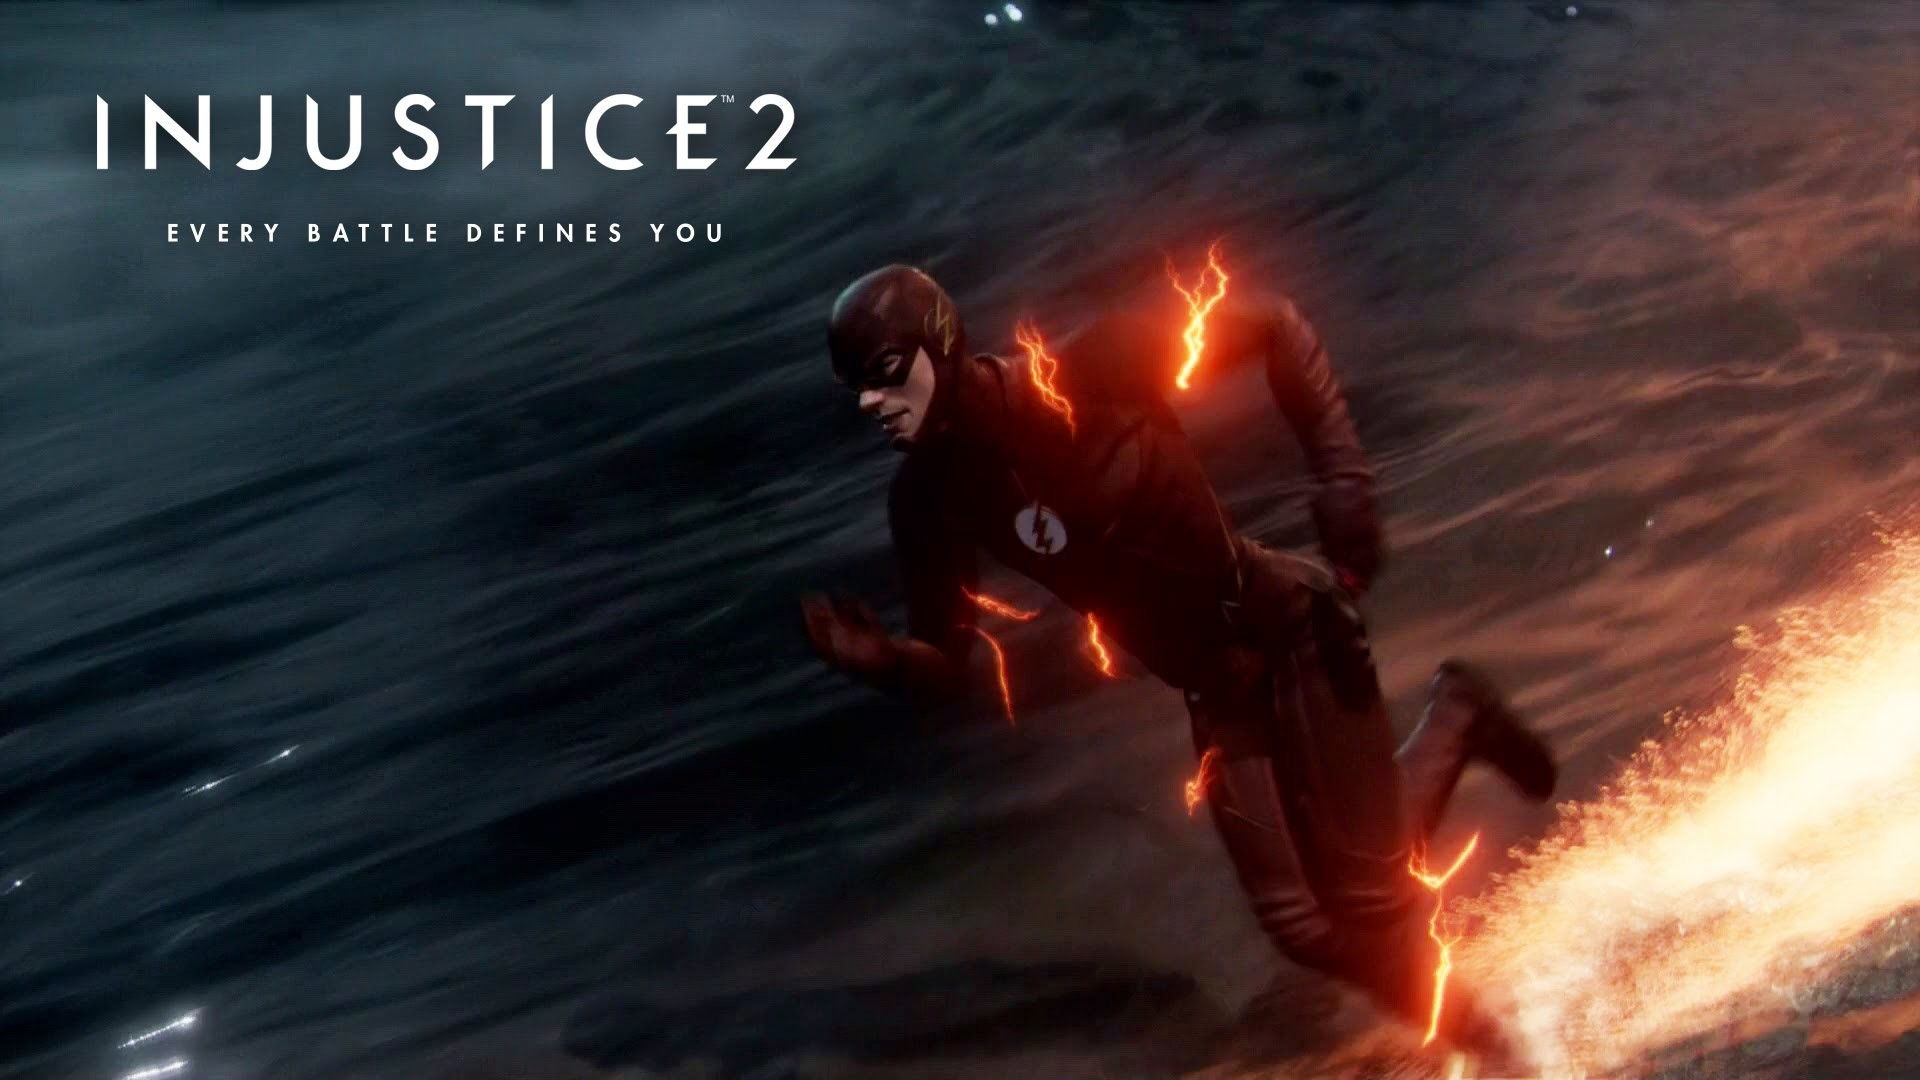 Injustice 2: The Flash CW Suit! Zoom in Injustice 2!